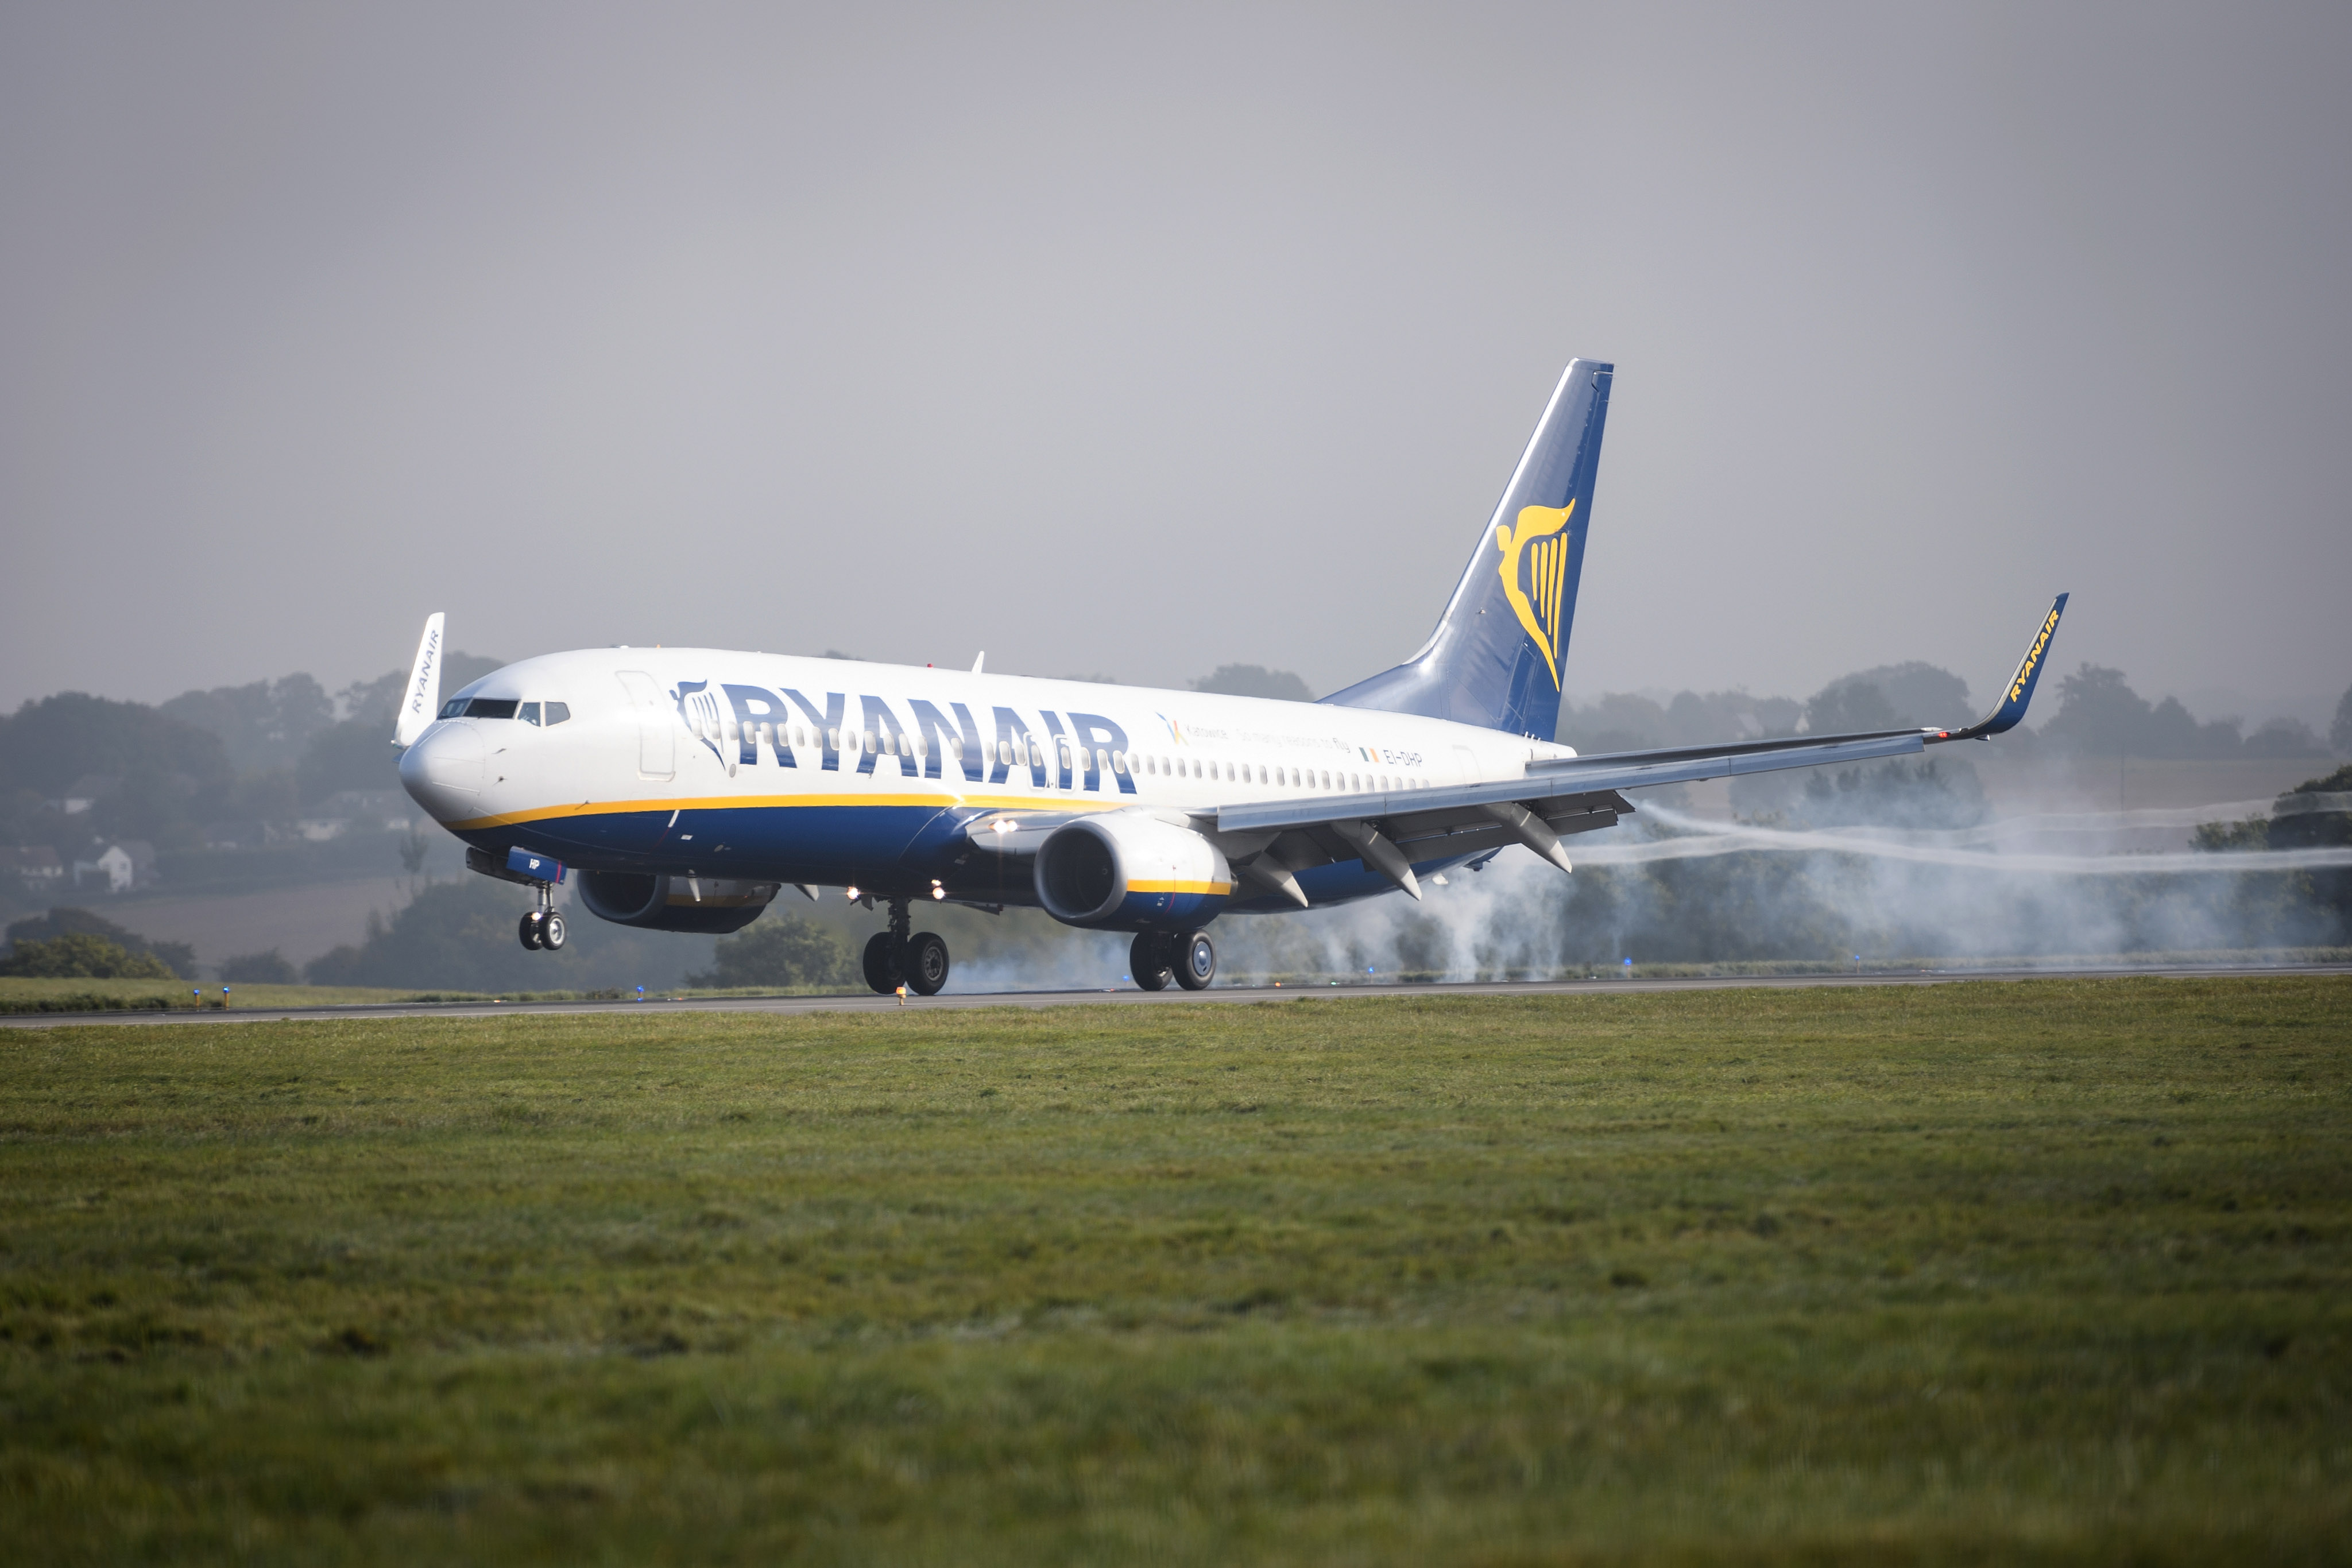 Cheap One Way Flights Ryanair Has Announced A Huge Sale For June With Flights As Cheap